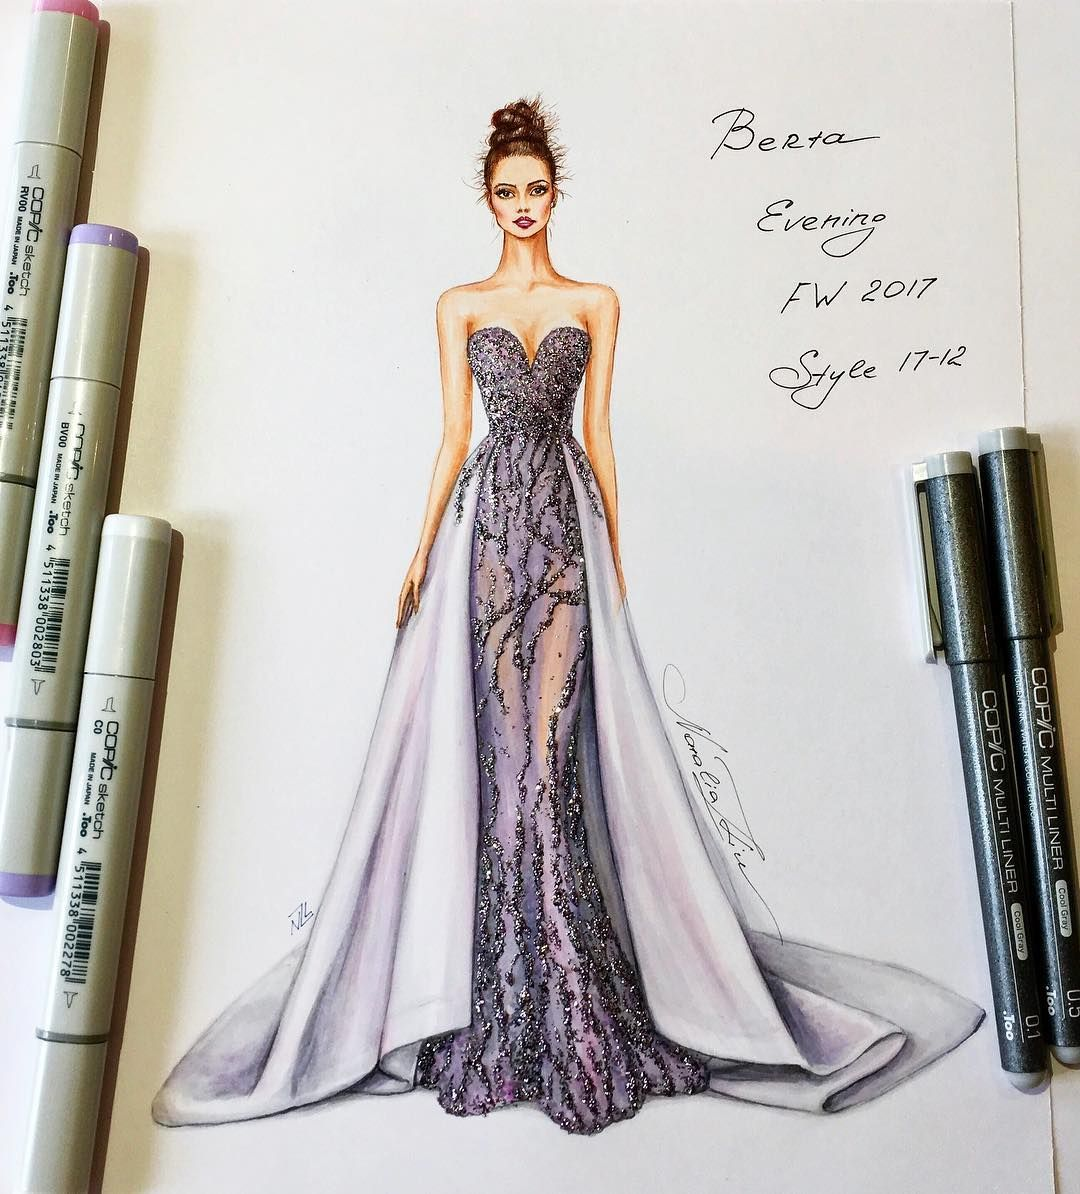 1 153 likes 13 comments nataliaz liu nataliazorinliu for Designer haute couture dresses